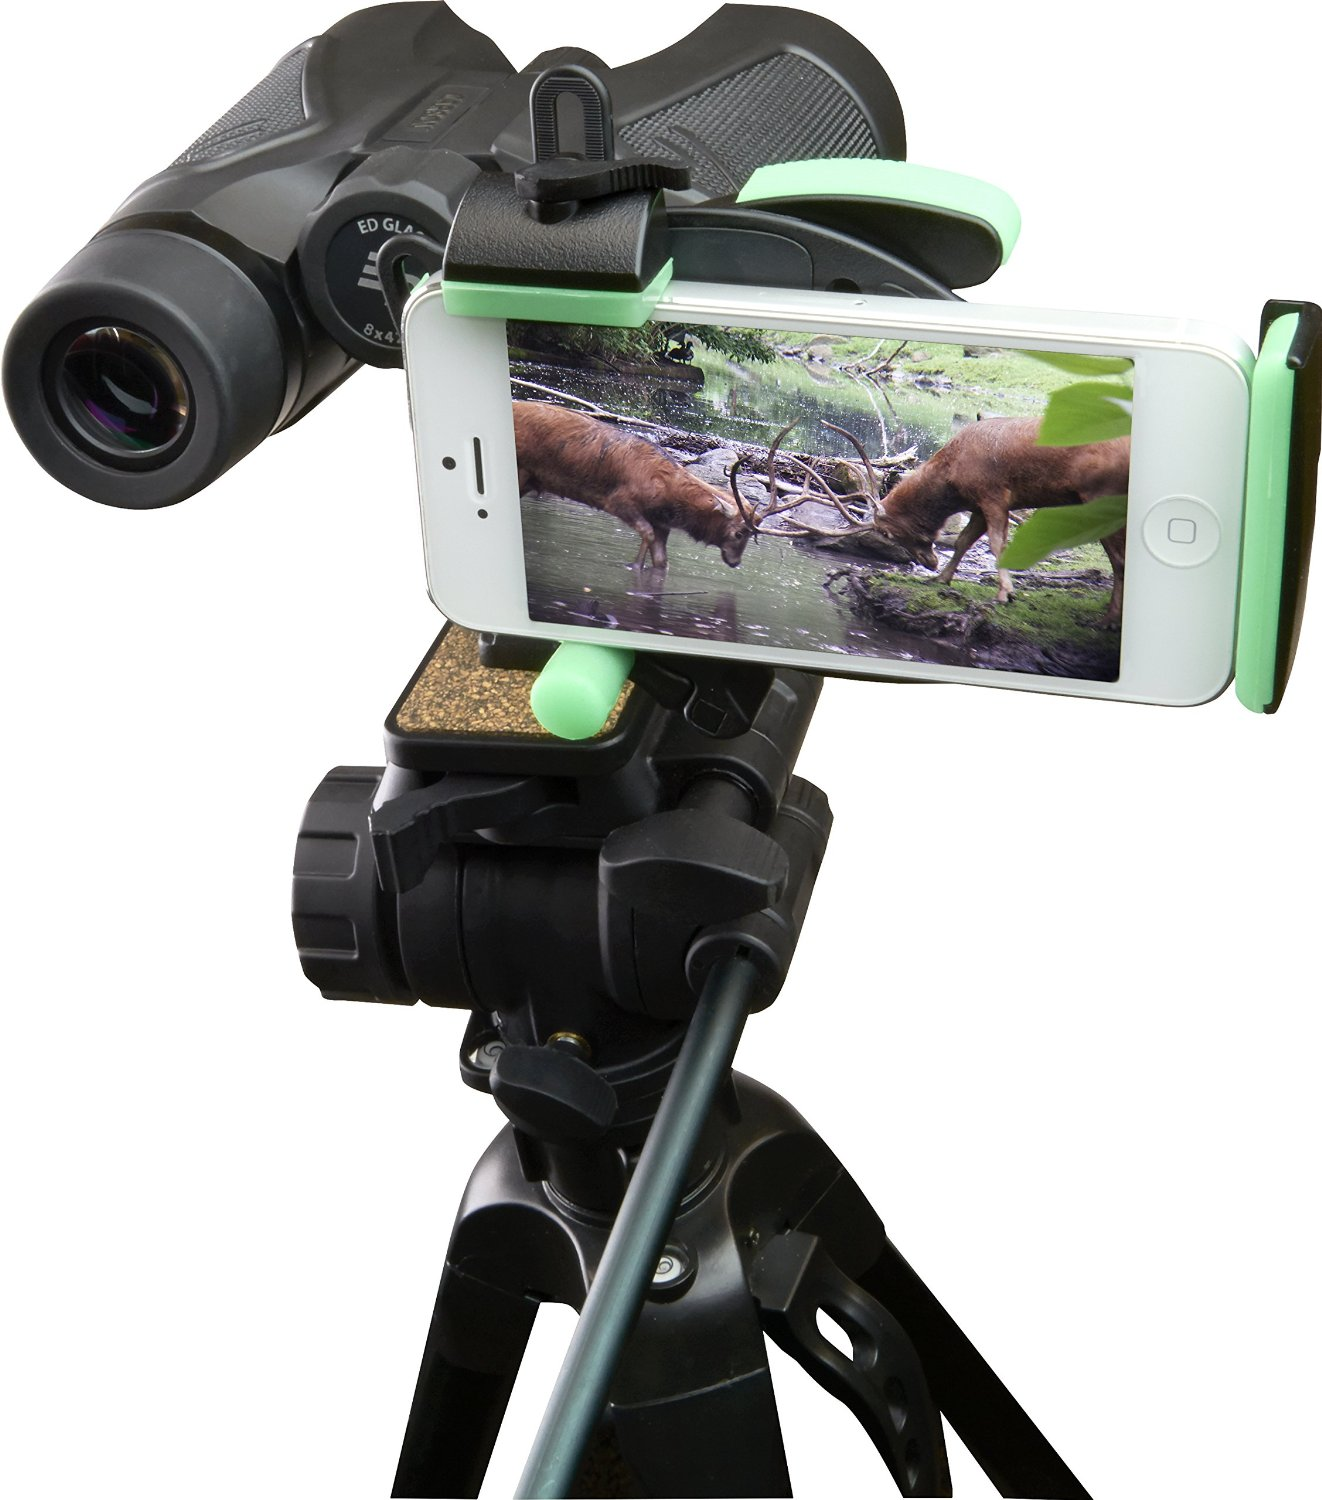 carson hookupz universal smartphone adapter The is-100 universal optics adapter connects most smart phones to any optical device in seconds it fits any smart phone with or without a case (you can even use a charging case for hours of continual, uninterrupted use) the universal adapter can be used on binoculars, monoculars, spotting scopes,.